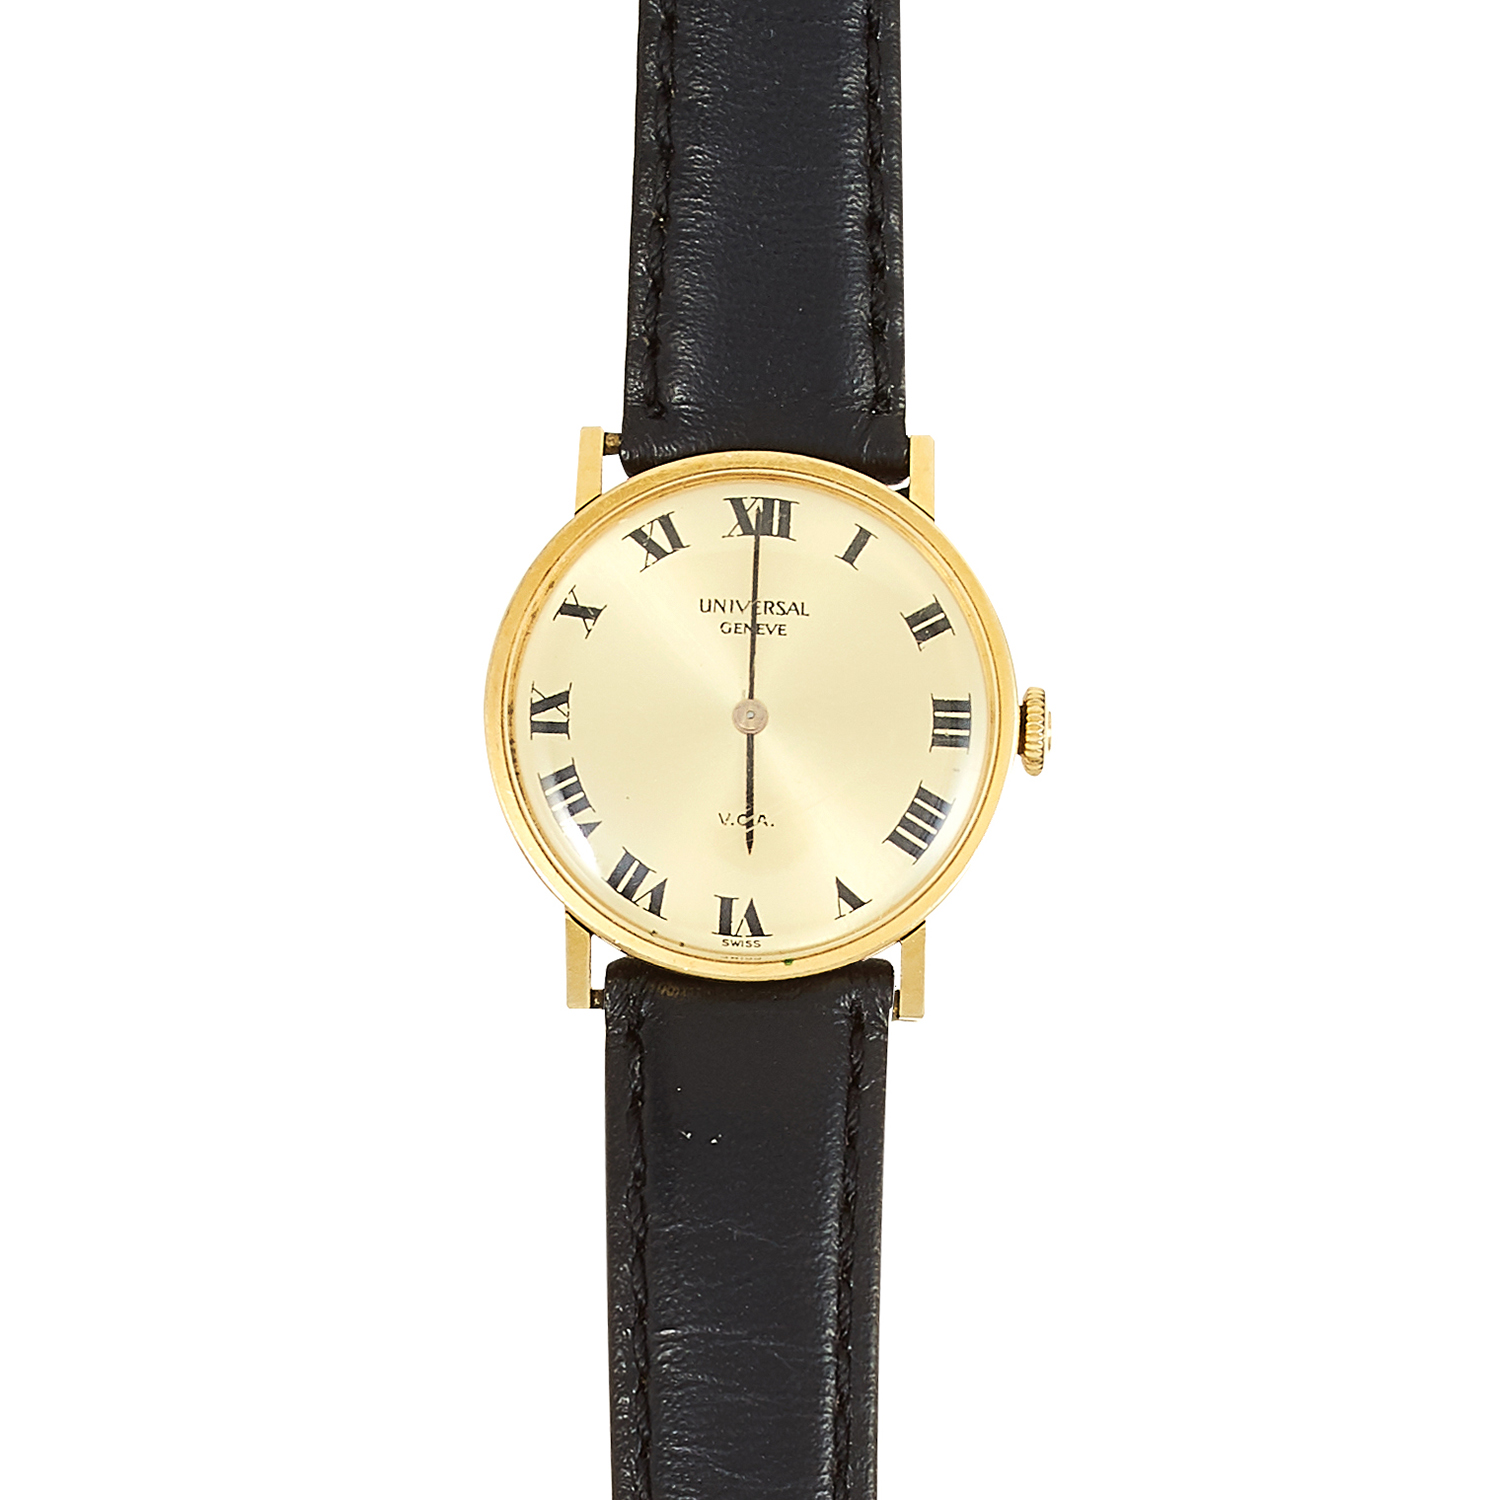 Los 354 - A LADIES WRISTWATCH, UNIVERSAL with gold dial and black leather strap, 23cm, 19.41g.